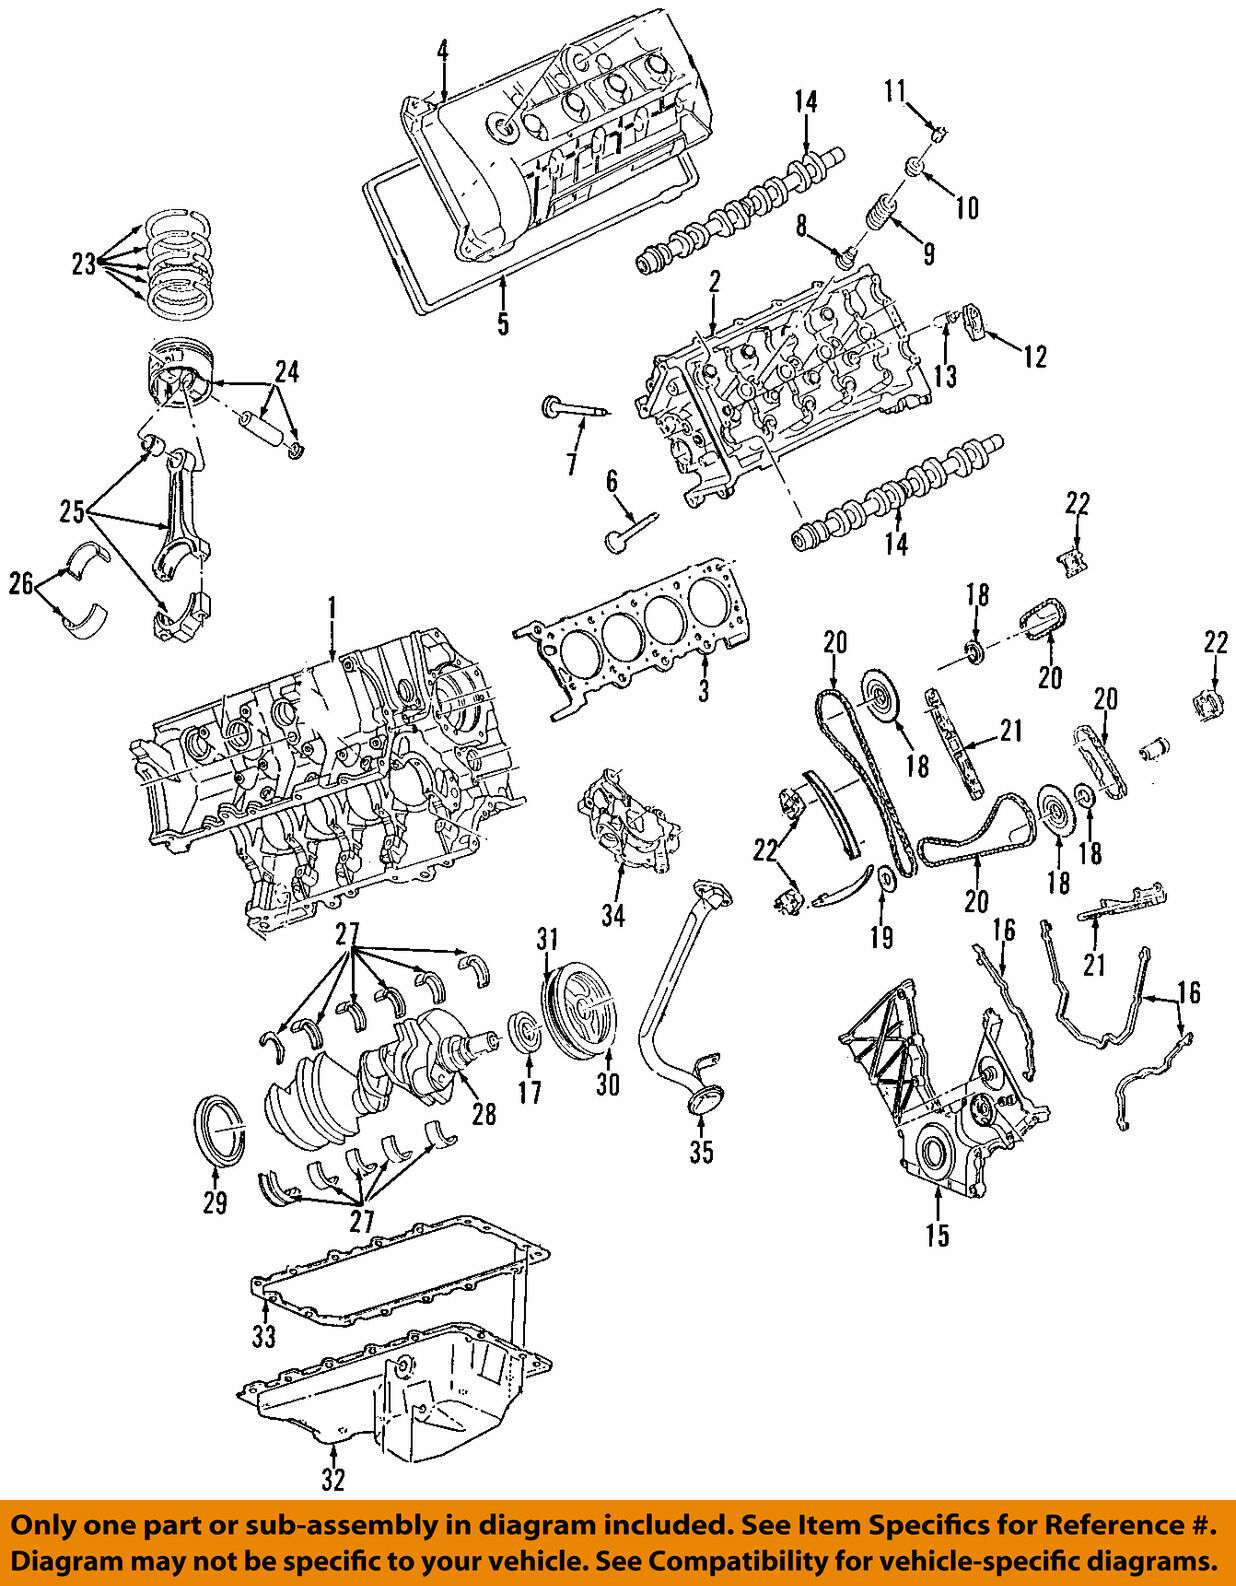 Lincoln Ford Oem 95 02 Continental Engine Timing Chain Guide 1994 Diagram 1 Of 1only Available